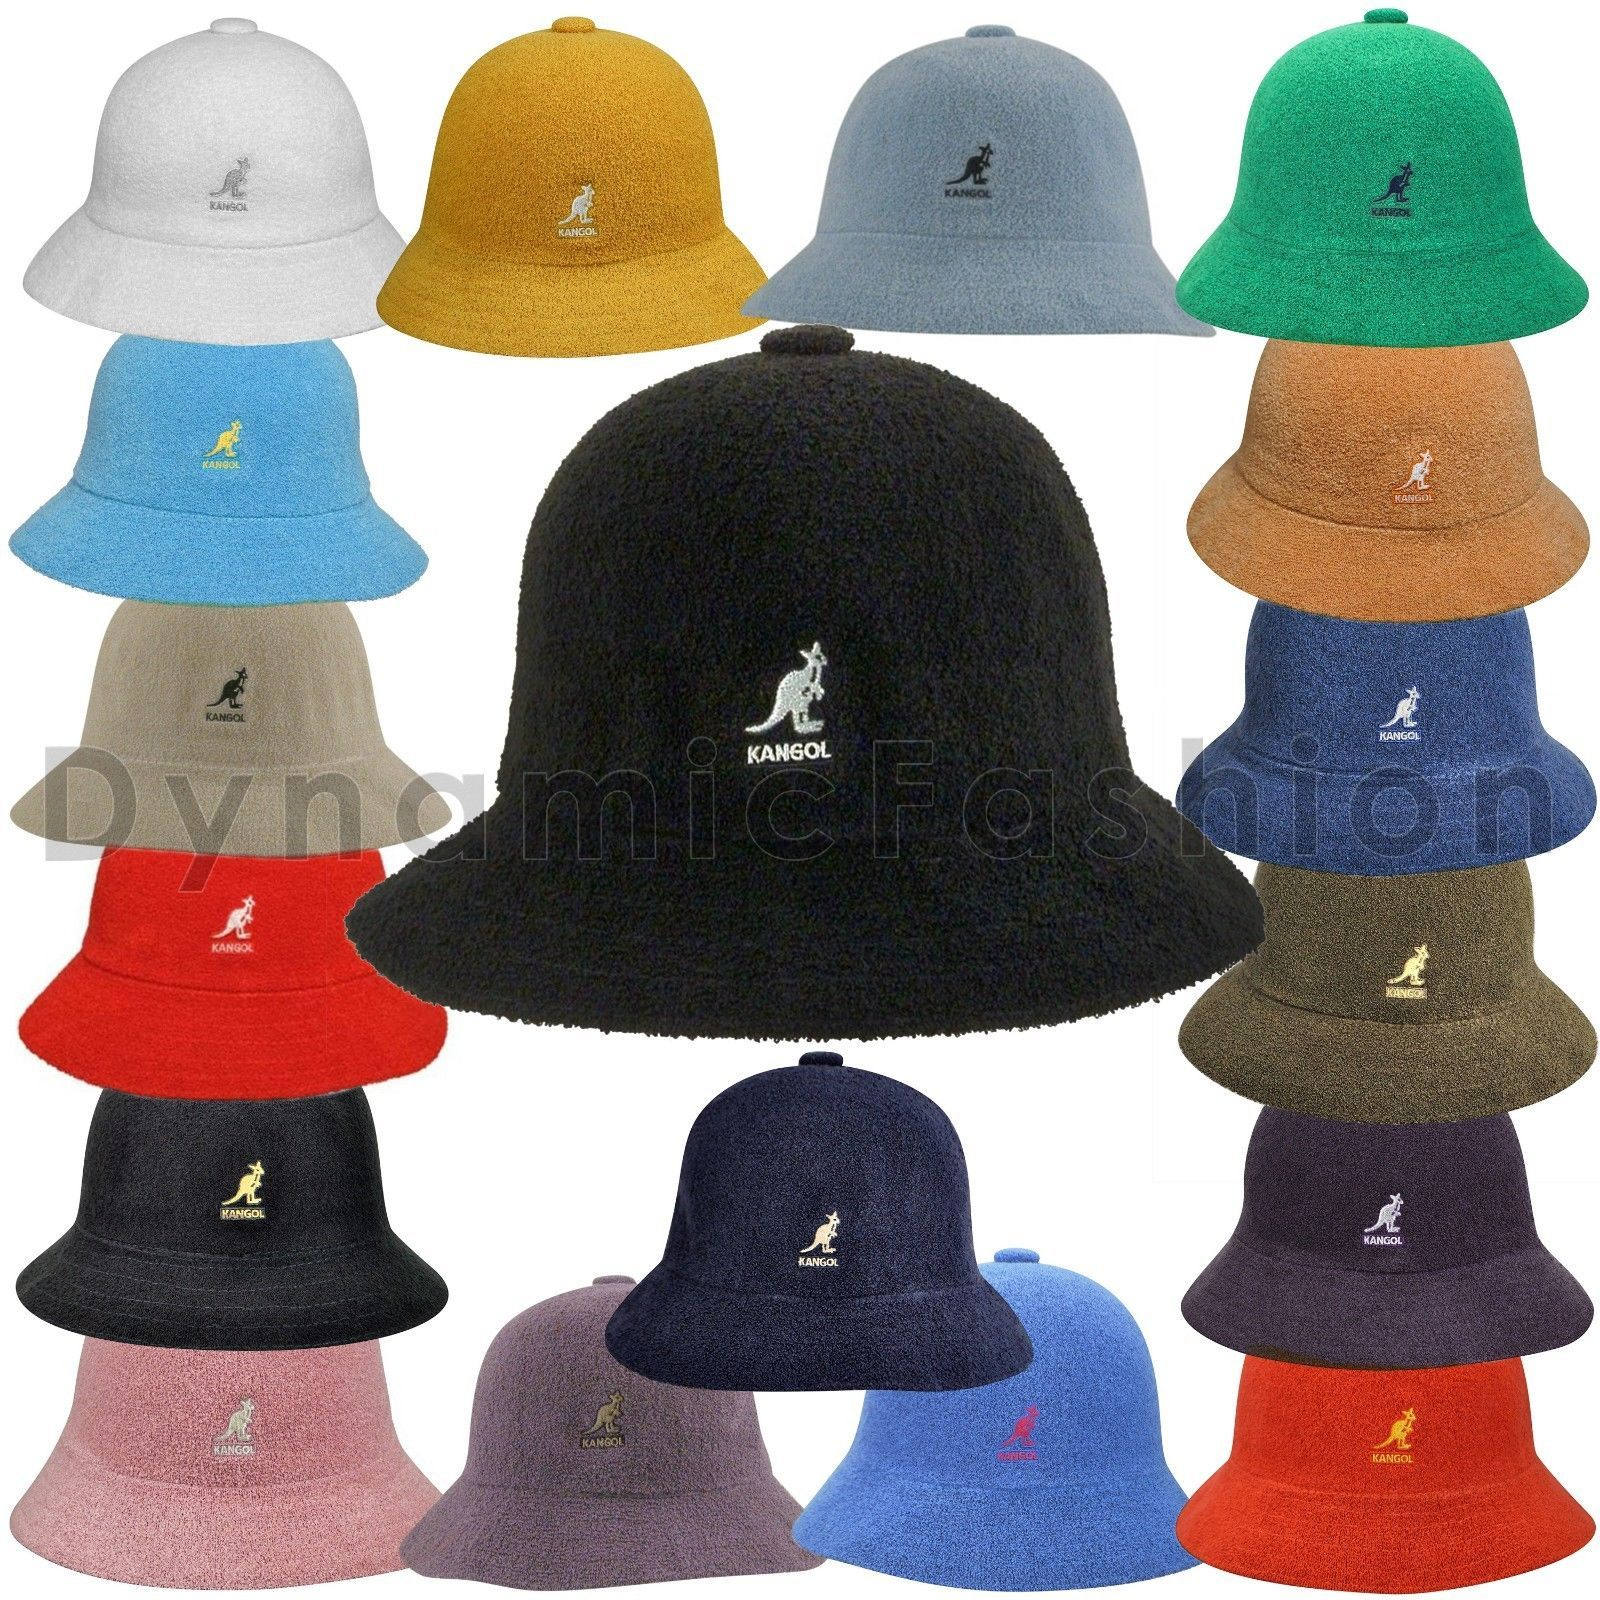 Authentic Kangol Bermuda Casual Bucket Cap Hat 0397Bc Sizes S M L Xl ... 20d7e66ea23e